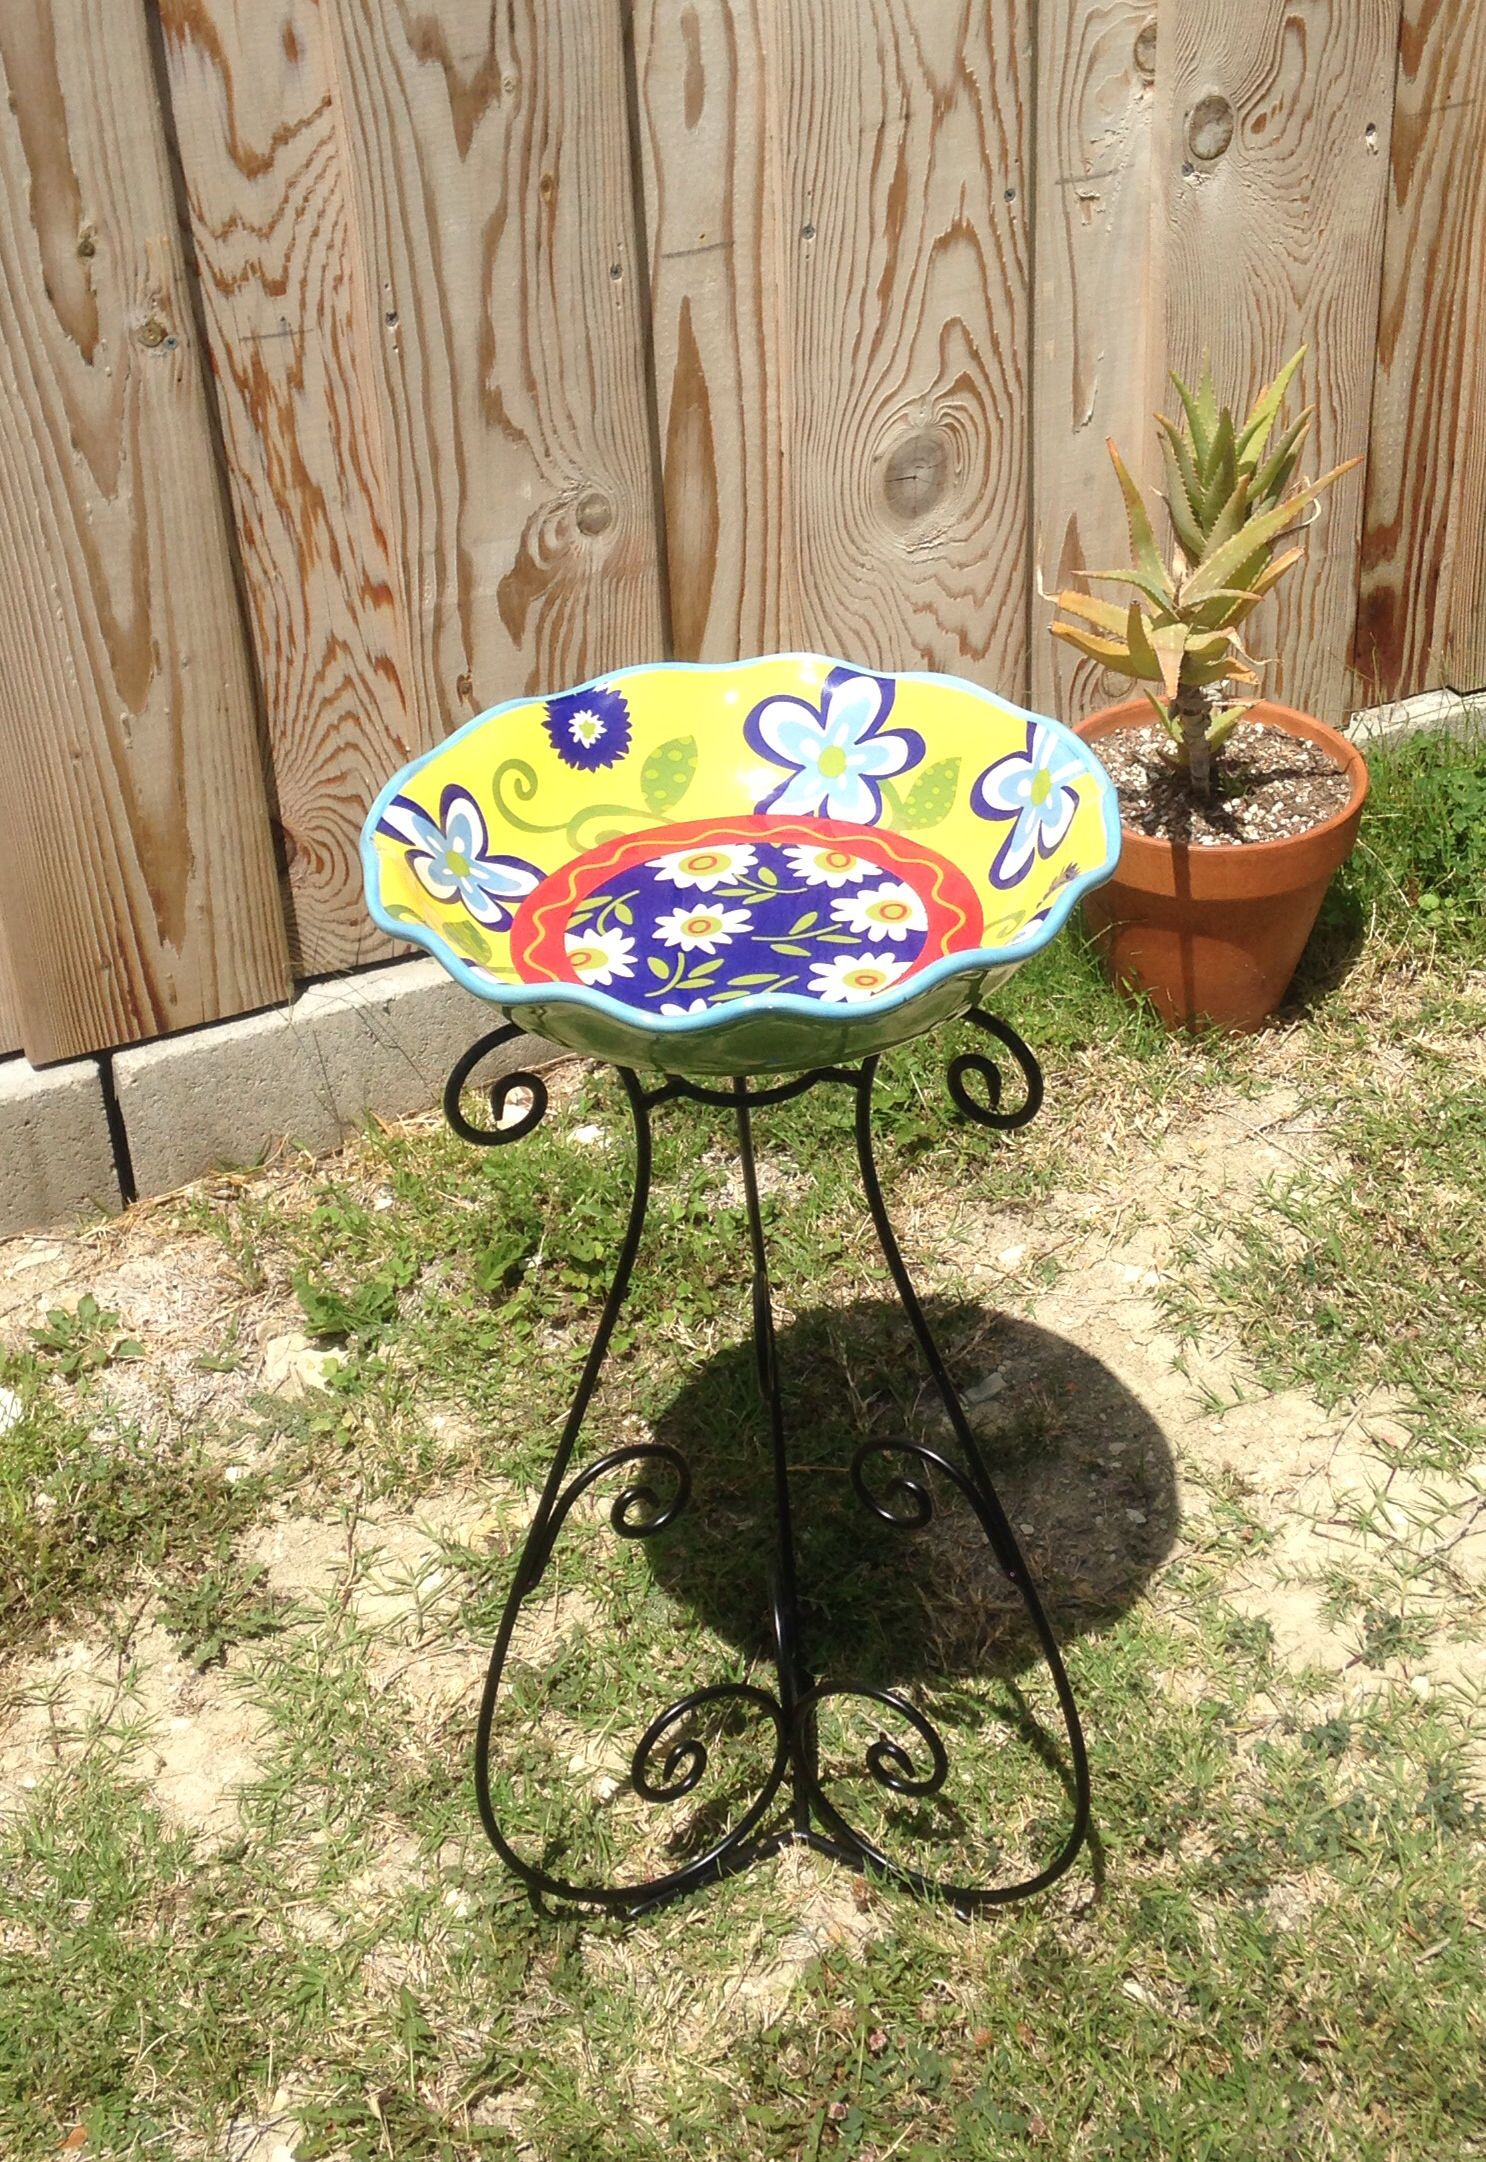 Bird Bath Using Gazing Ball Stand Bowl From Hobby Lobby Clearance 66 80 Off